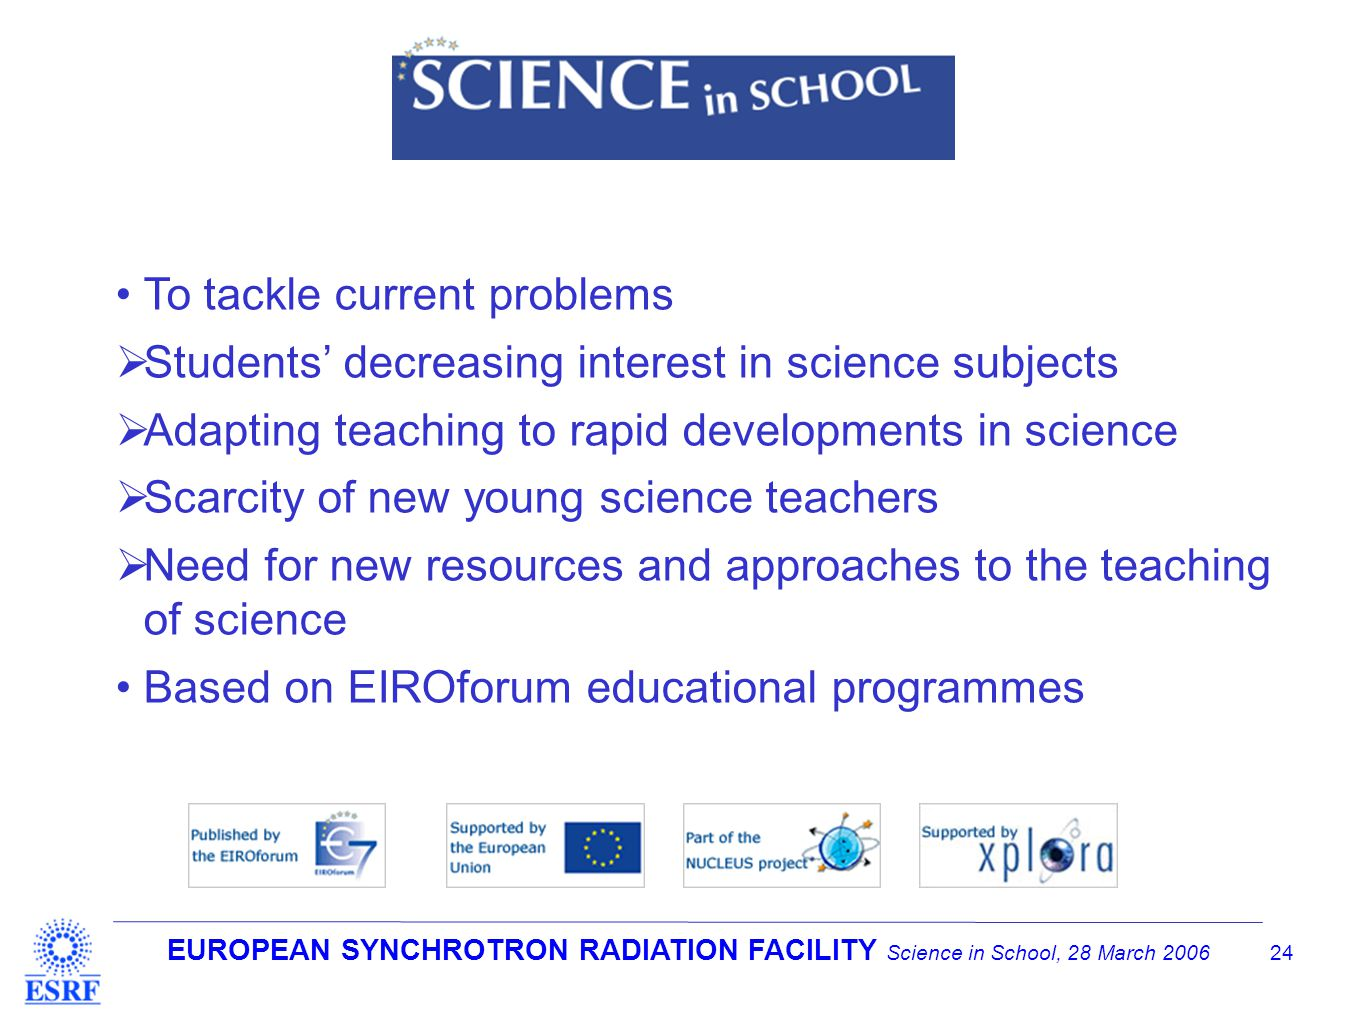 EUROPEAN SYNCHROTRON RADIATION FACILITY Science in School, 28 March 2006 24 To tackle current problems  Students' decreasing interest in science subjects  Adapting teaching to rapid developments in science  Scarcity of new young science teachers  Need for new resources and approaches to the teaching of science Based on EIROforum educational programmes